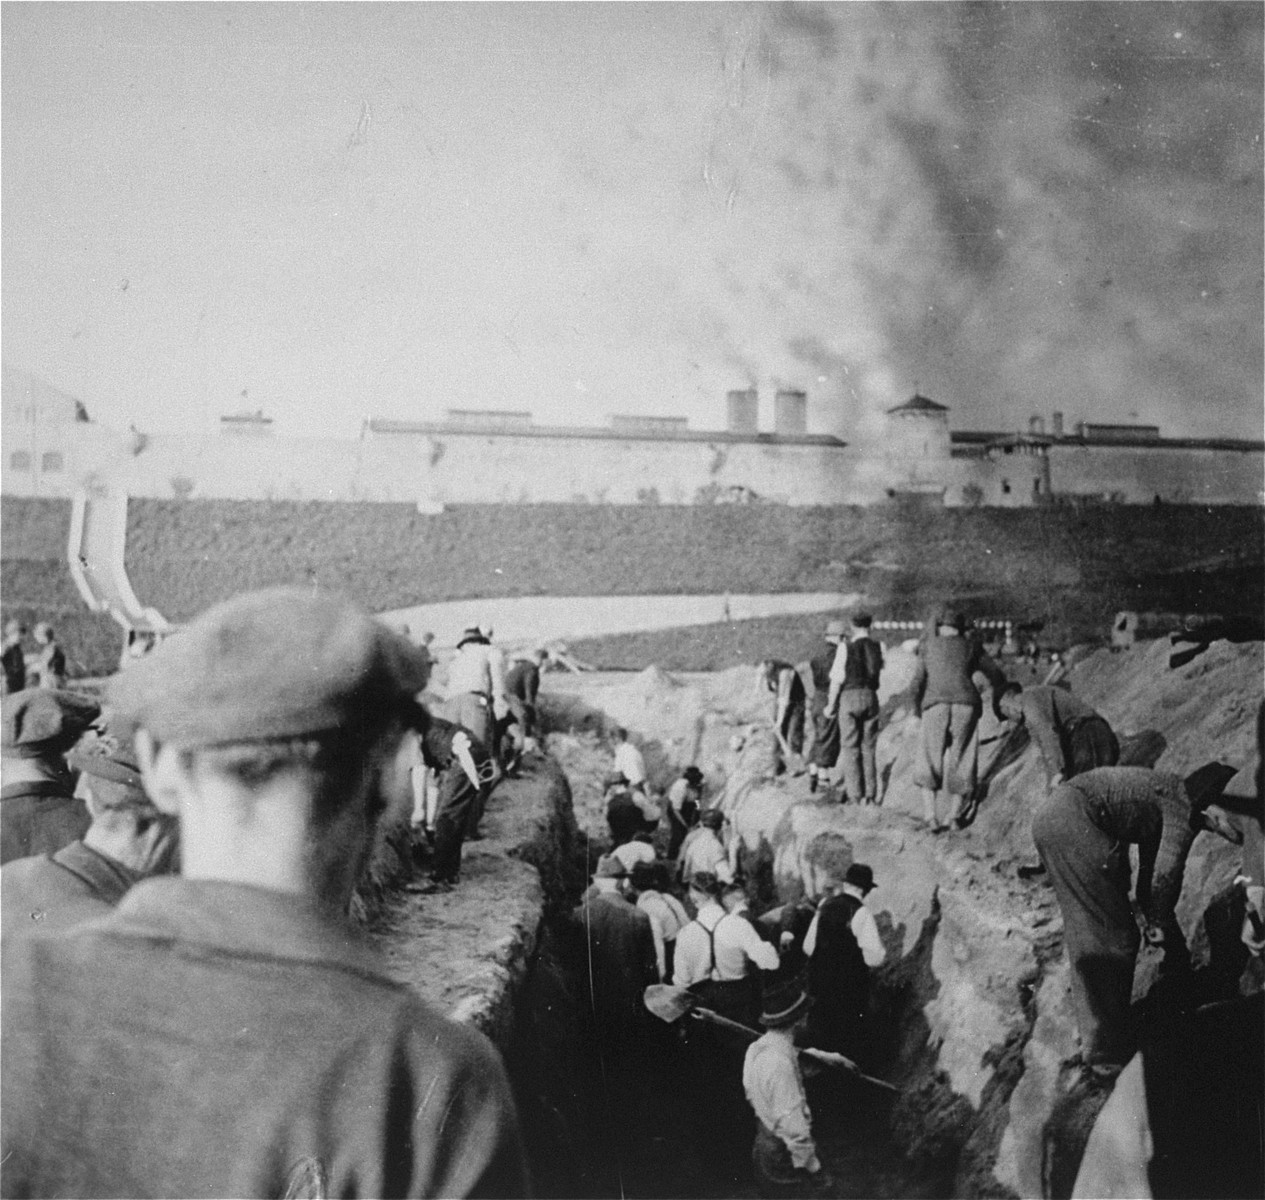 Austrian civilians prepare mass graves to bury former inmates in the Mauthausen concentration camp.